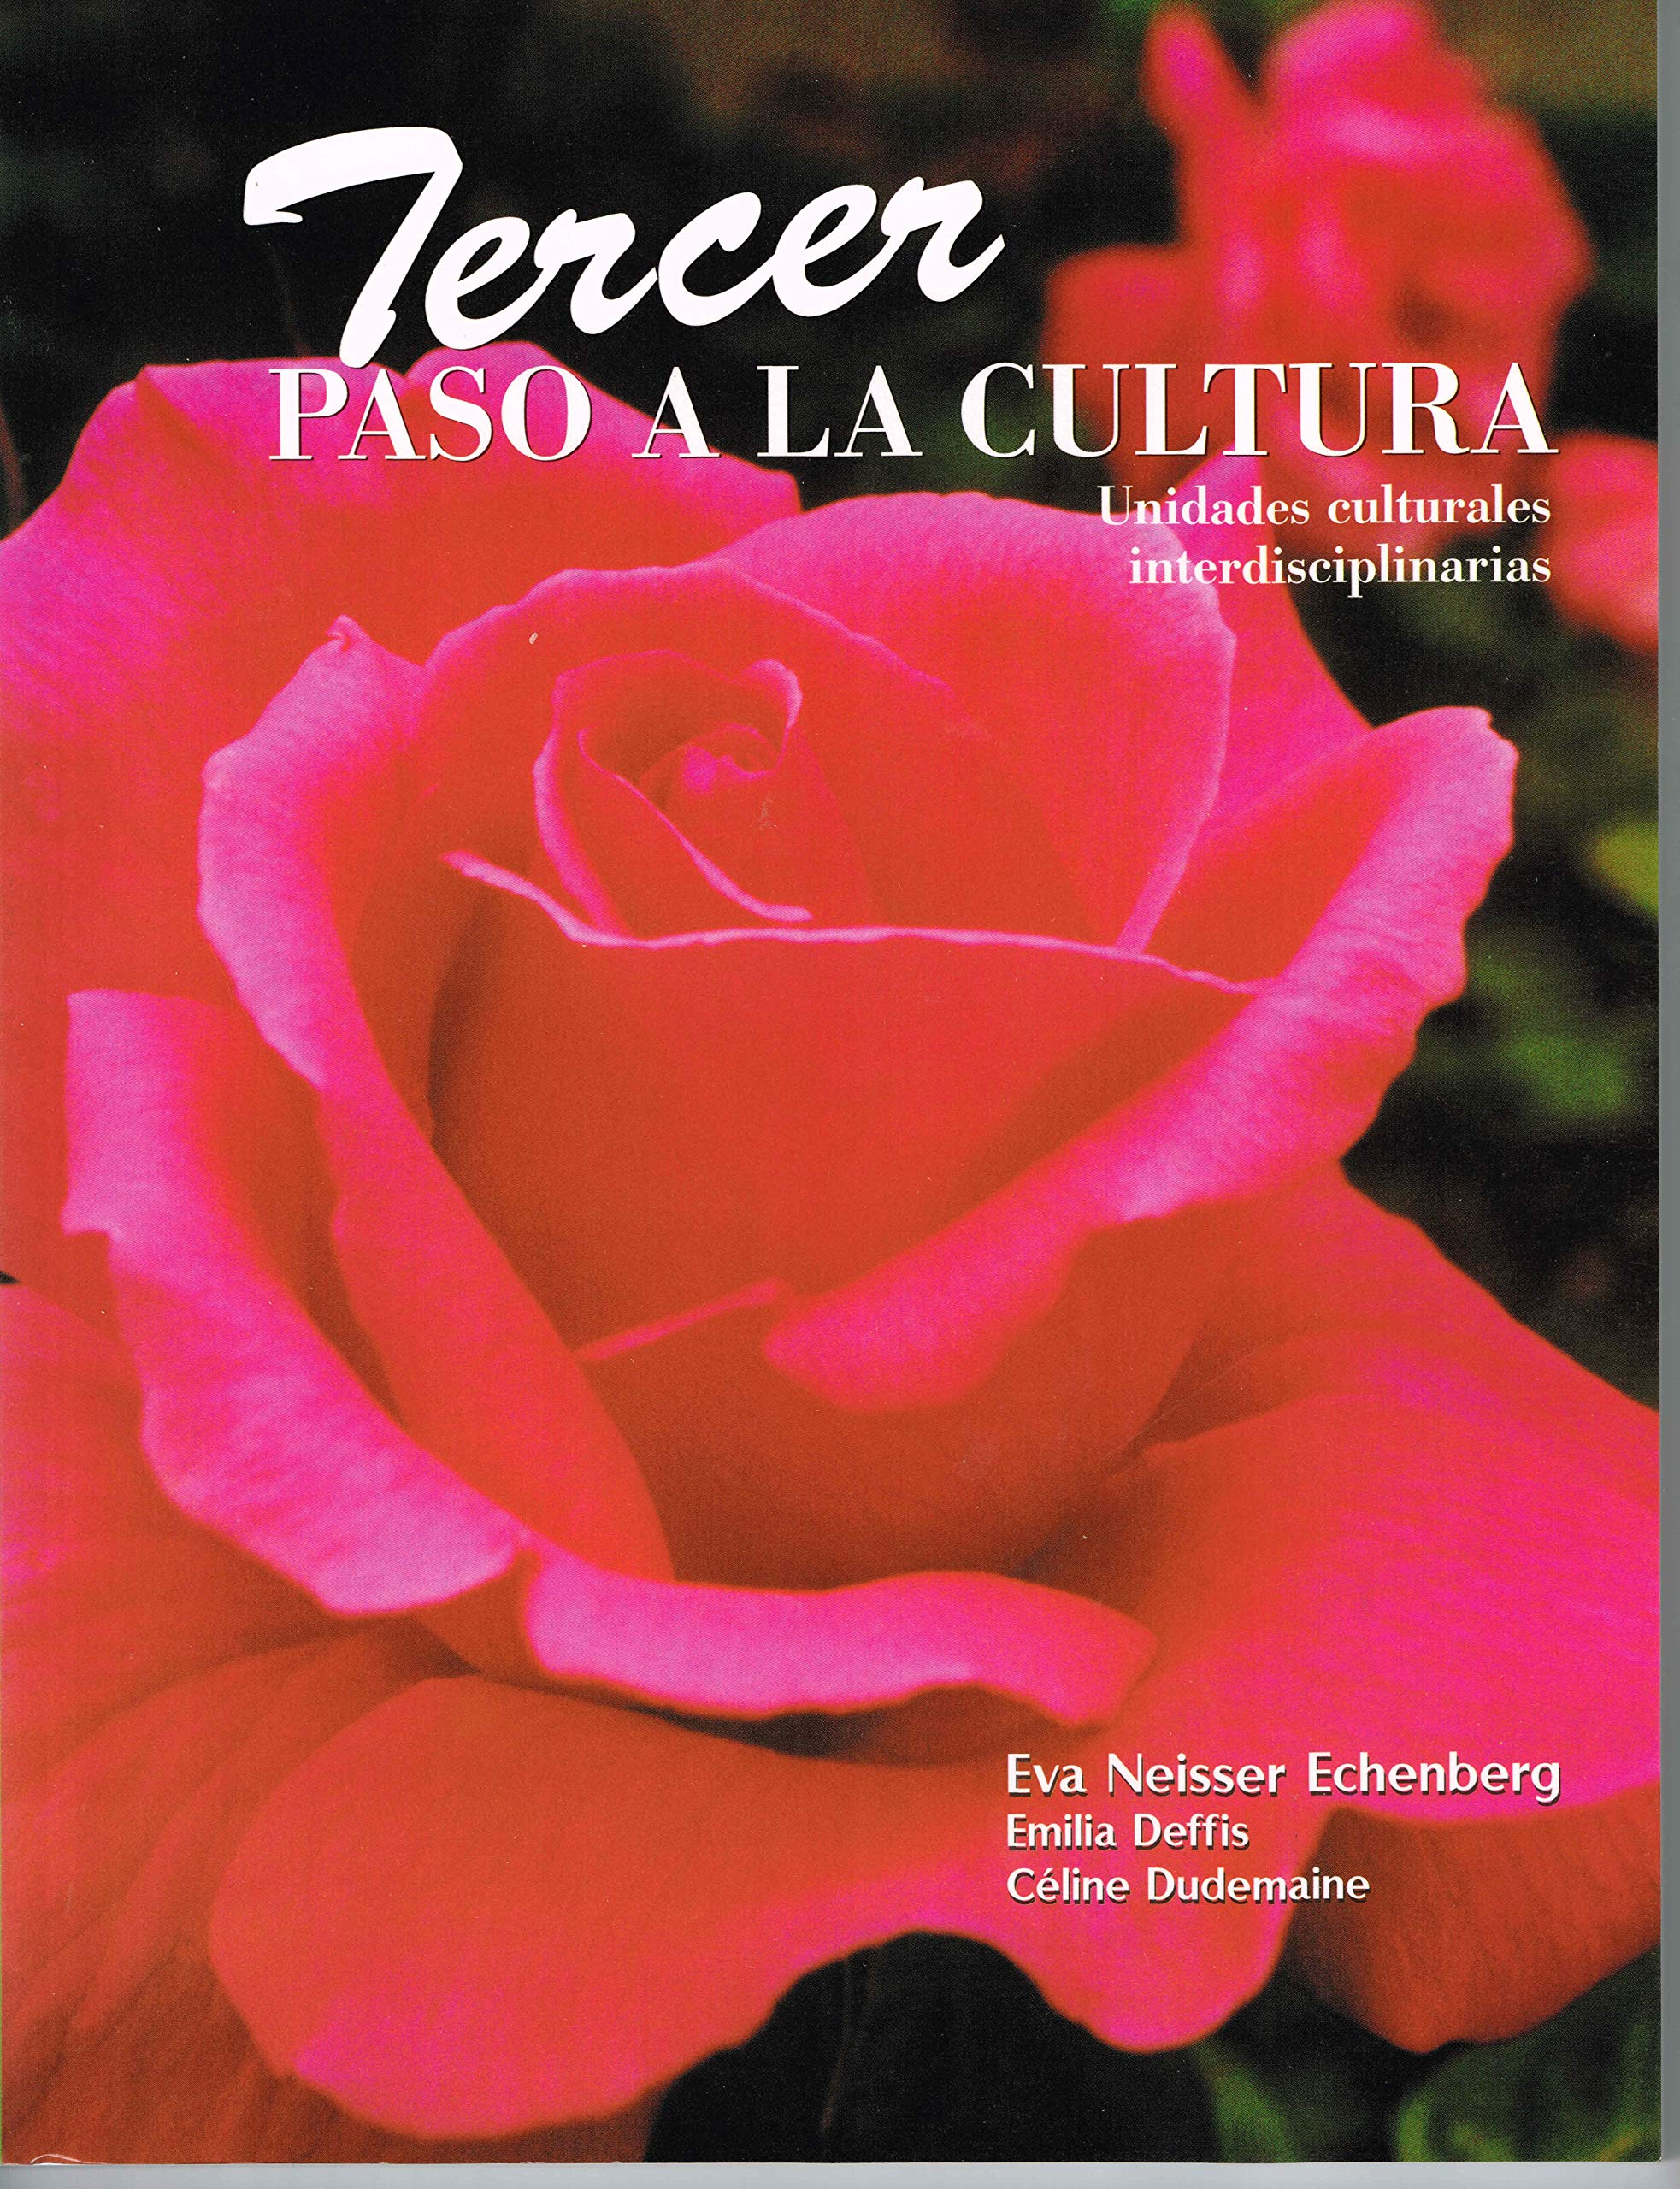 Tercer Paso a La Cultura / Third Step into Spanish Culture (Spanish Edition) (Spanish) Paperback – August 30, 2006